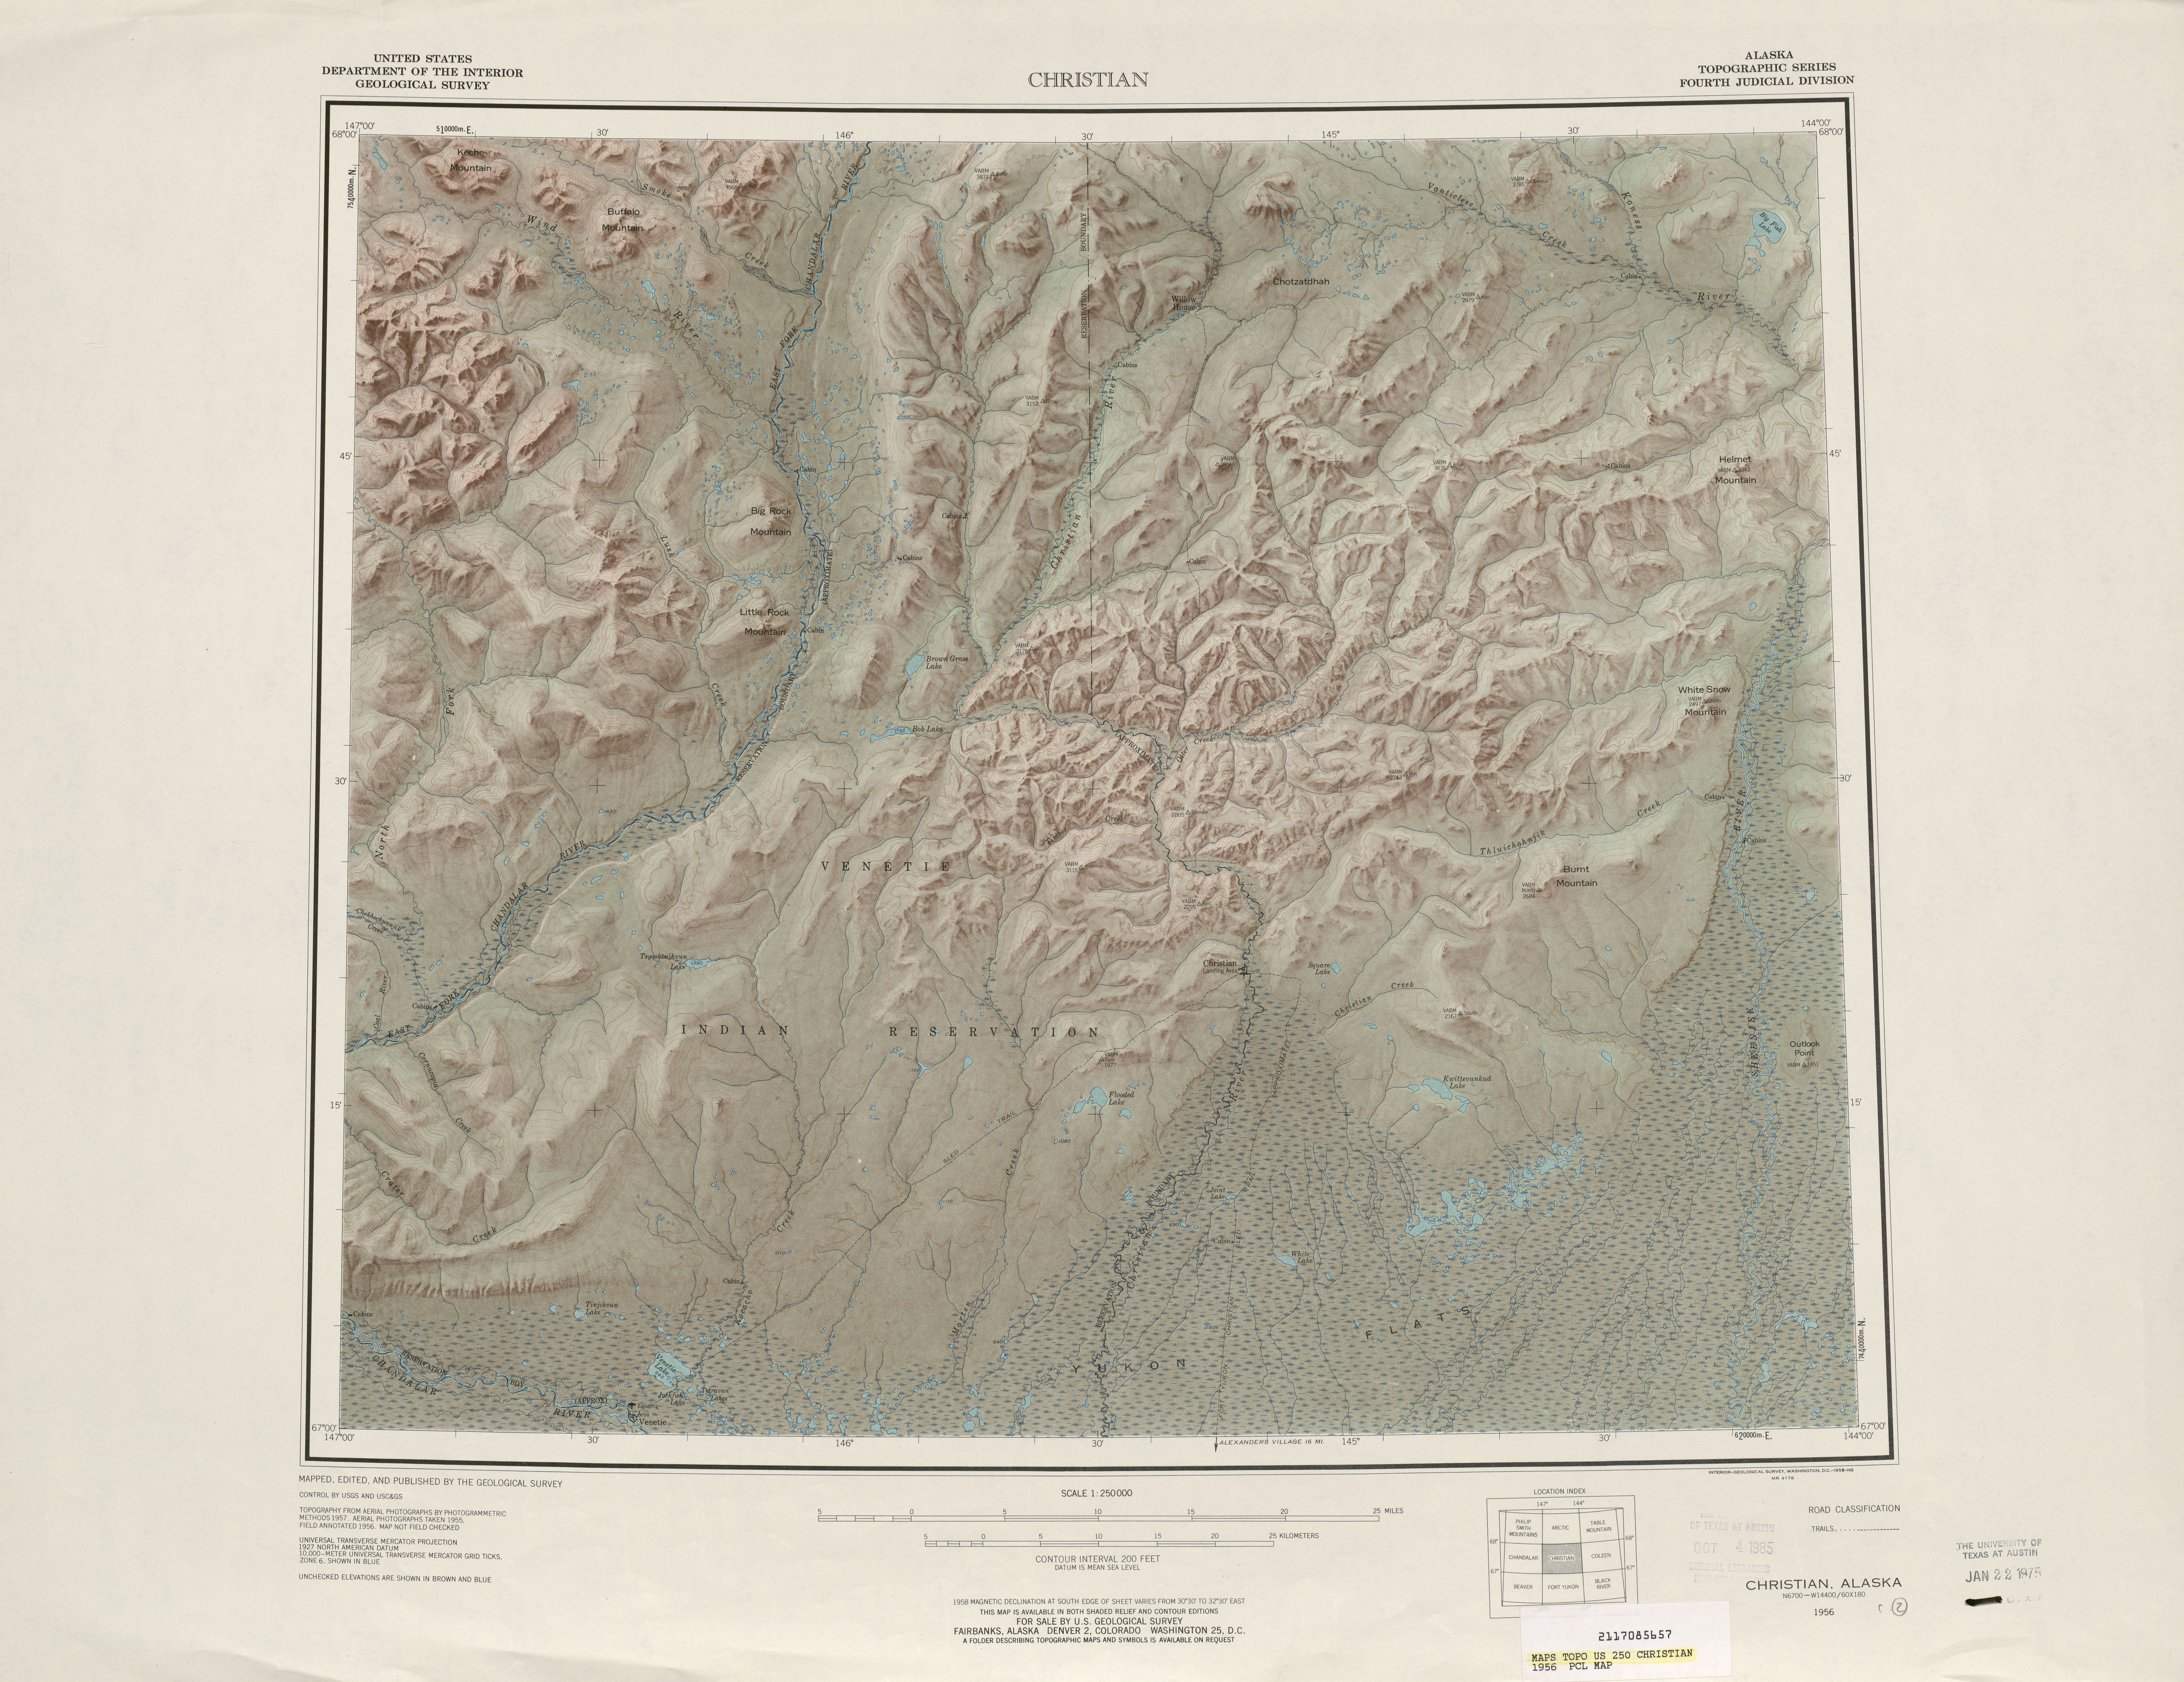 Christian Shaded Relief Map Sheet, United States 1956